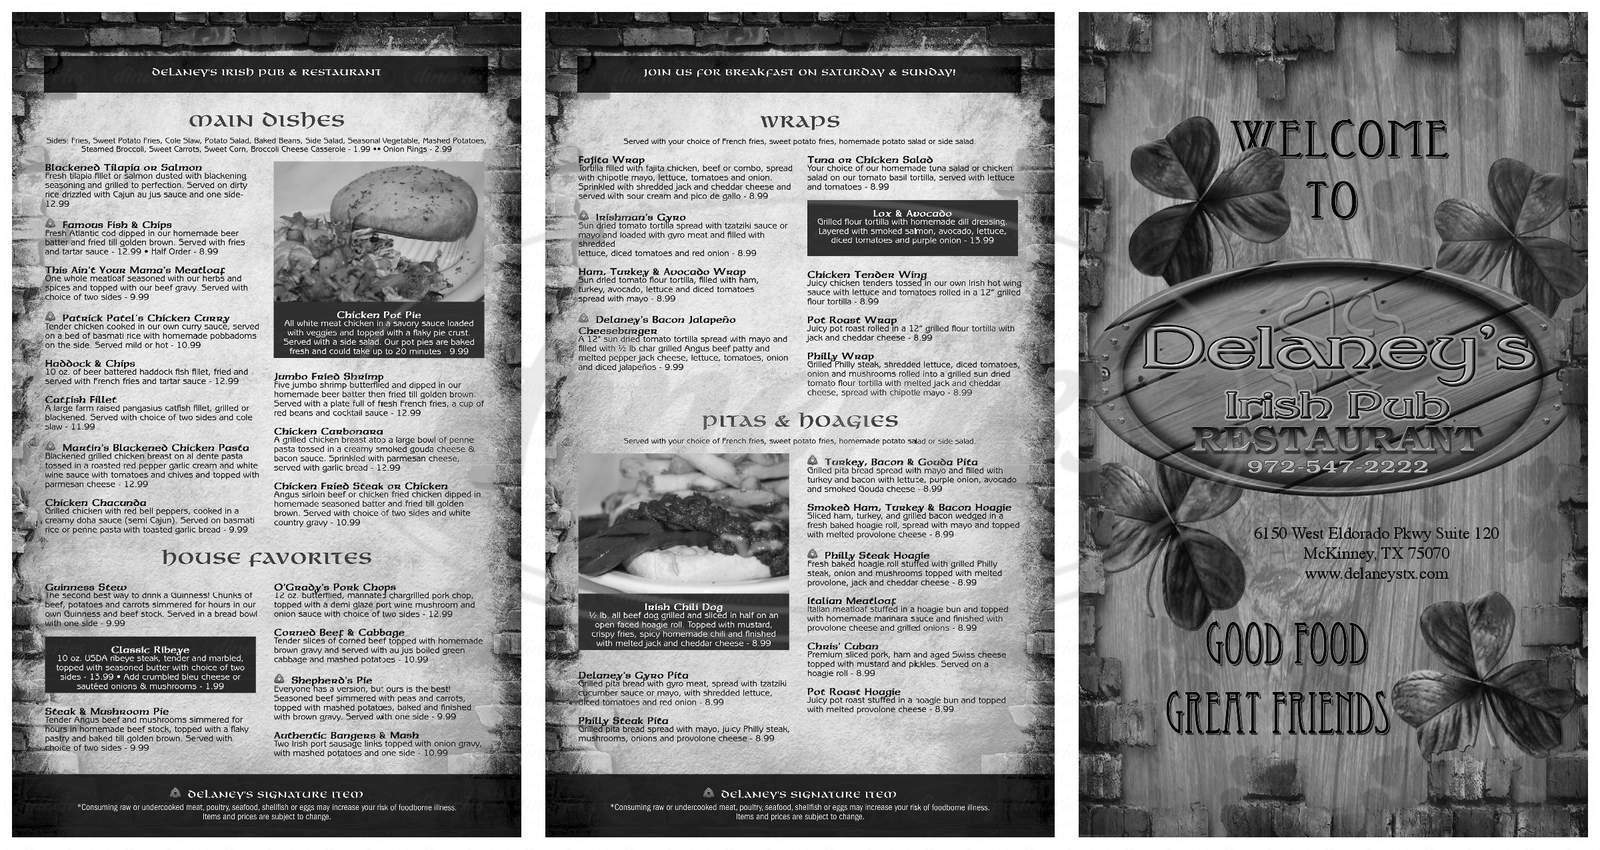 menu for Delaney's Irish Pub